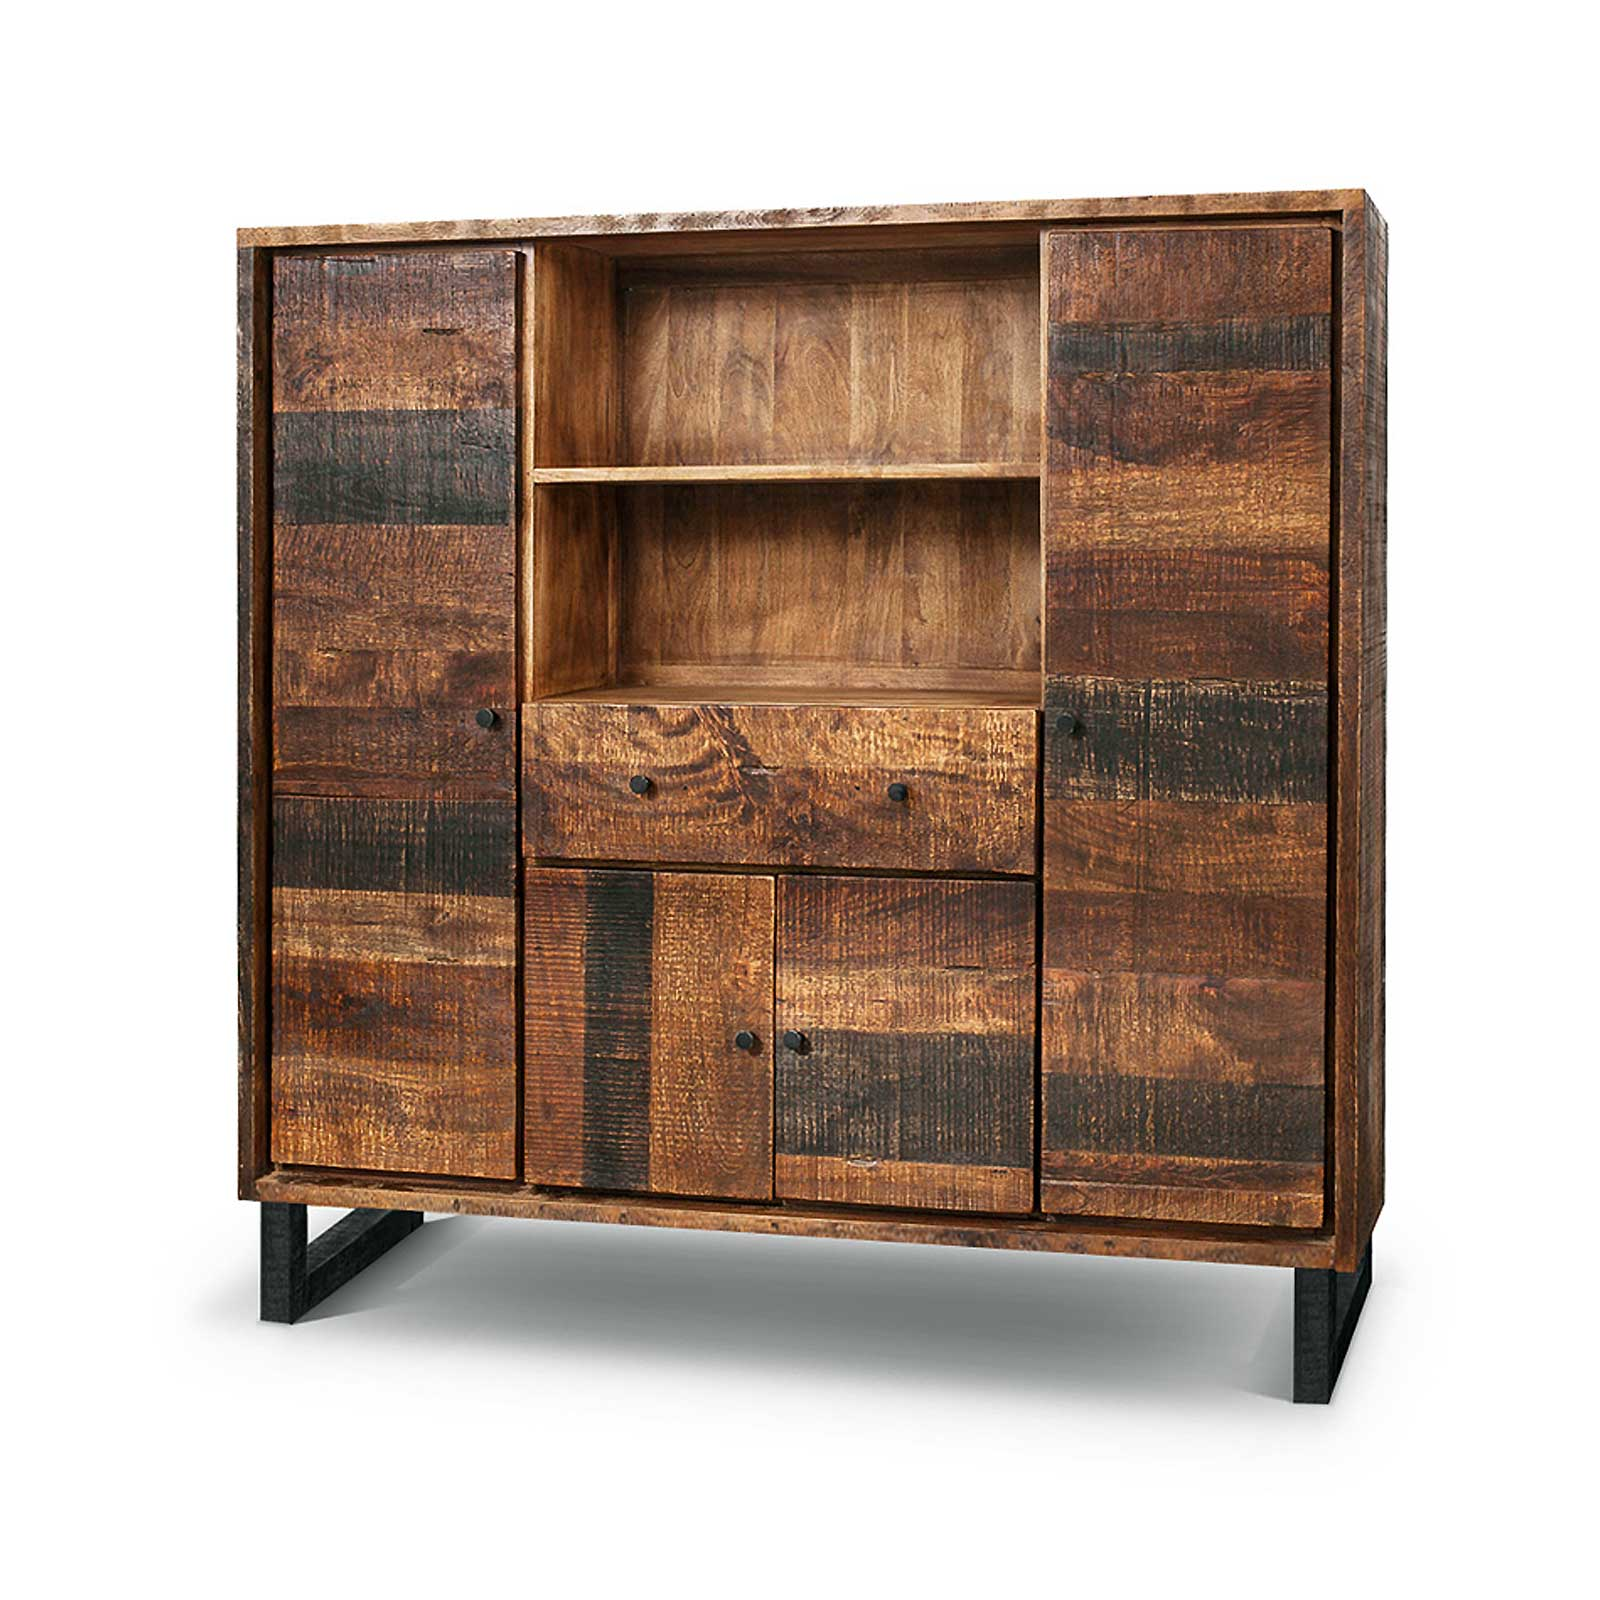 Highboard Kumasi aus Massivholz in Antik Braun 150 x 150 cm